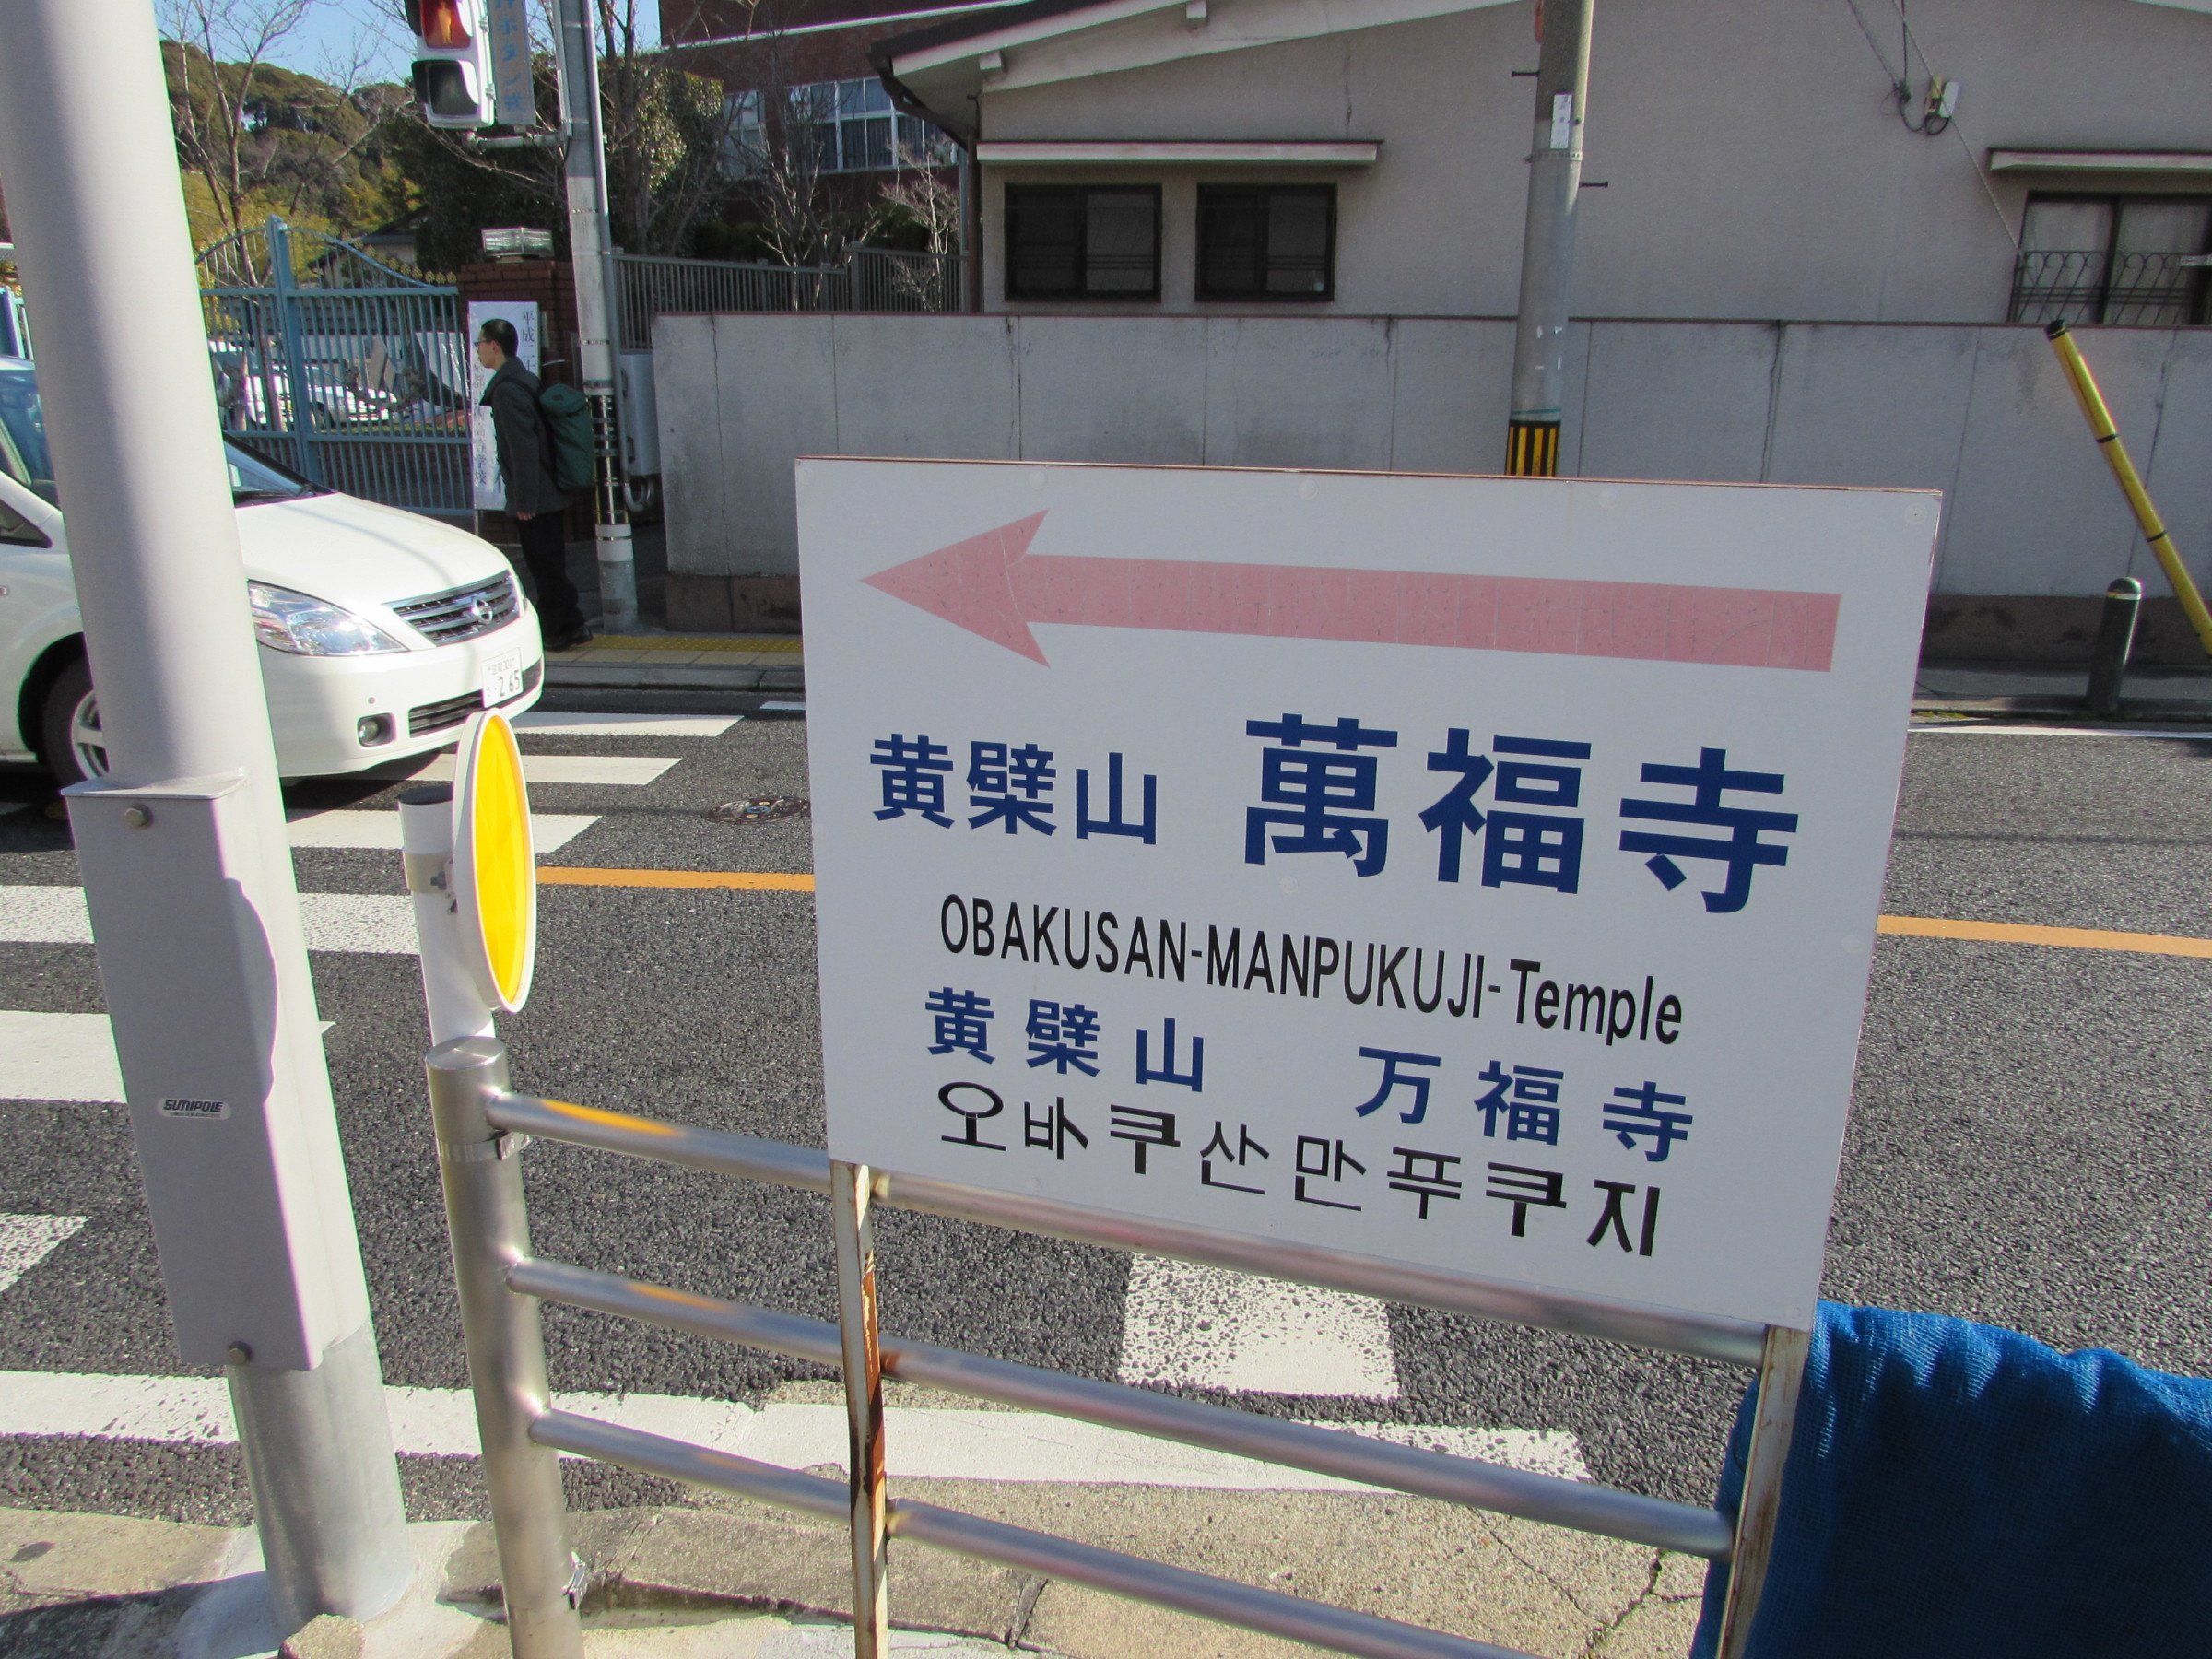 From directly outside the station, Mampuku-ji is clearly signposted. It takes less than 10 minutes to walk there from the station.